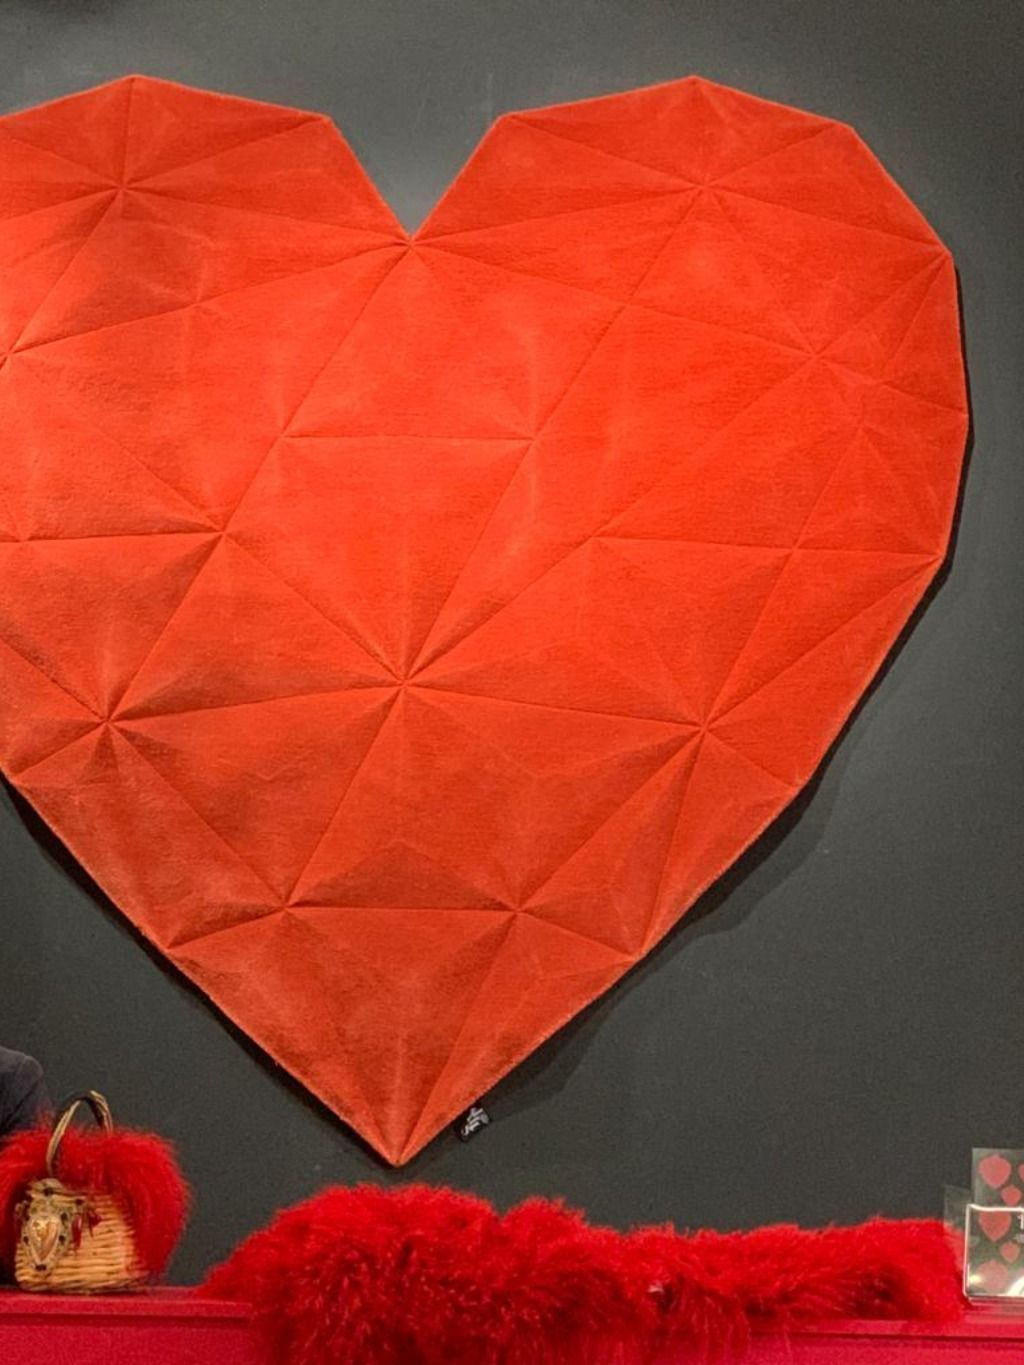 Regina di Cuori is a Heart-shaped original and luxurious artistic rug. Shop Online for the best Italian design. Free home delivery.